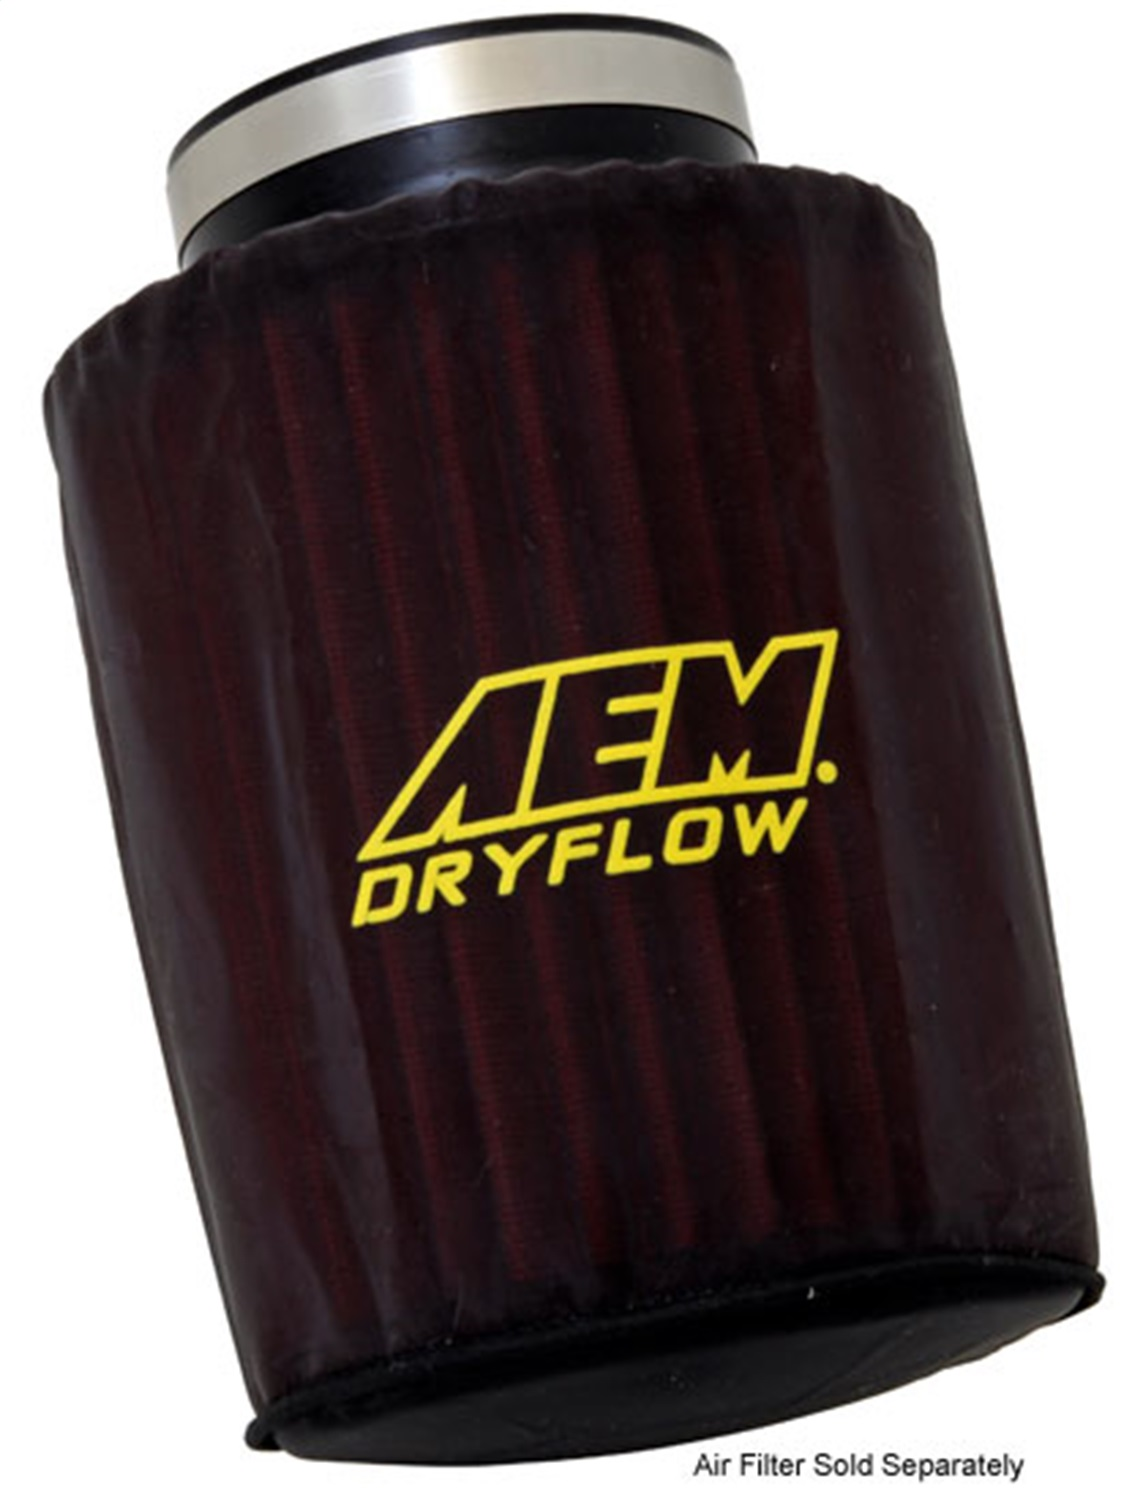 AEM Induction 1-4007 Dryflow Pre-Filter 1-4007